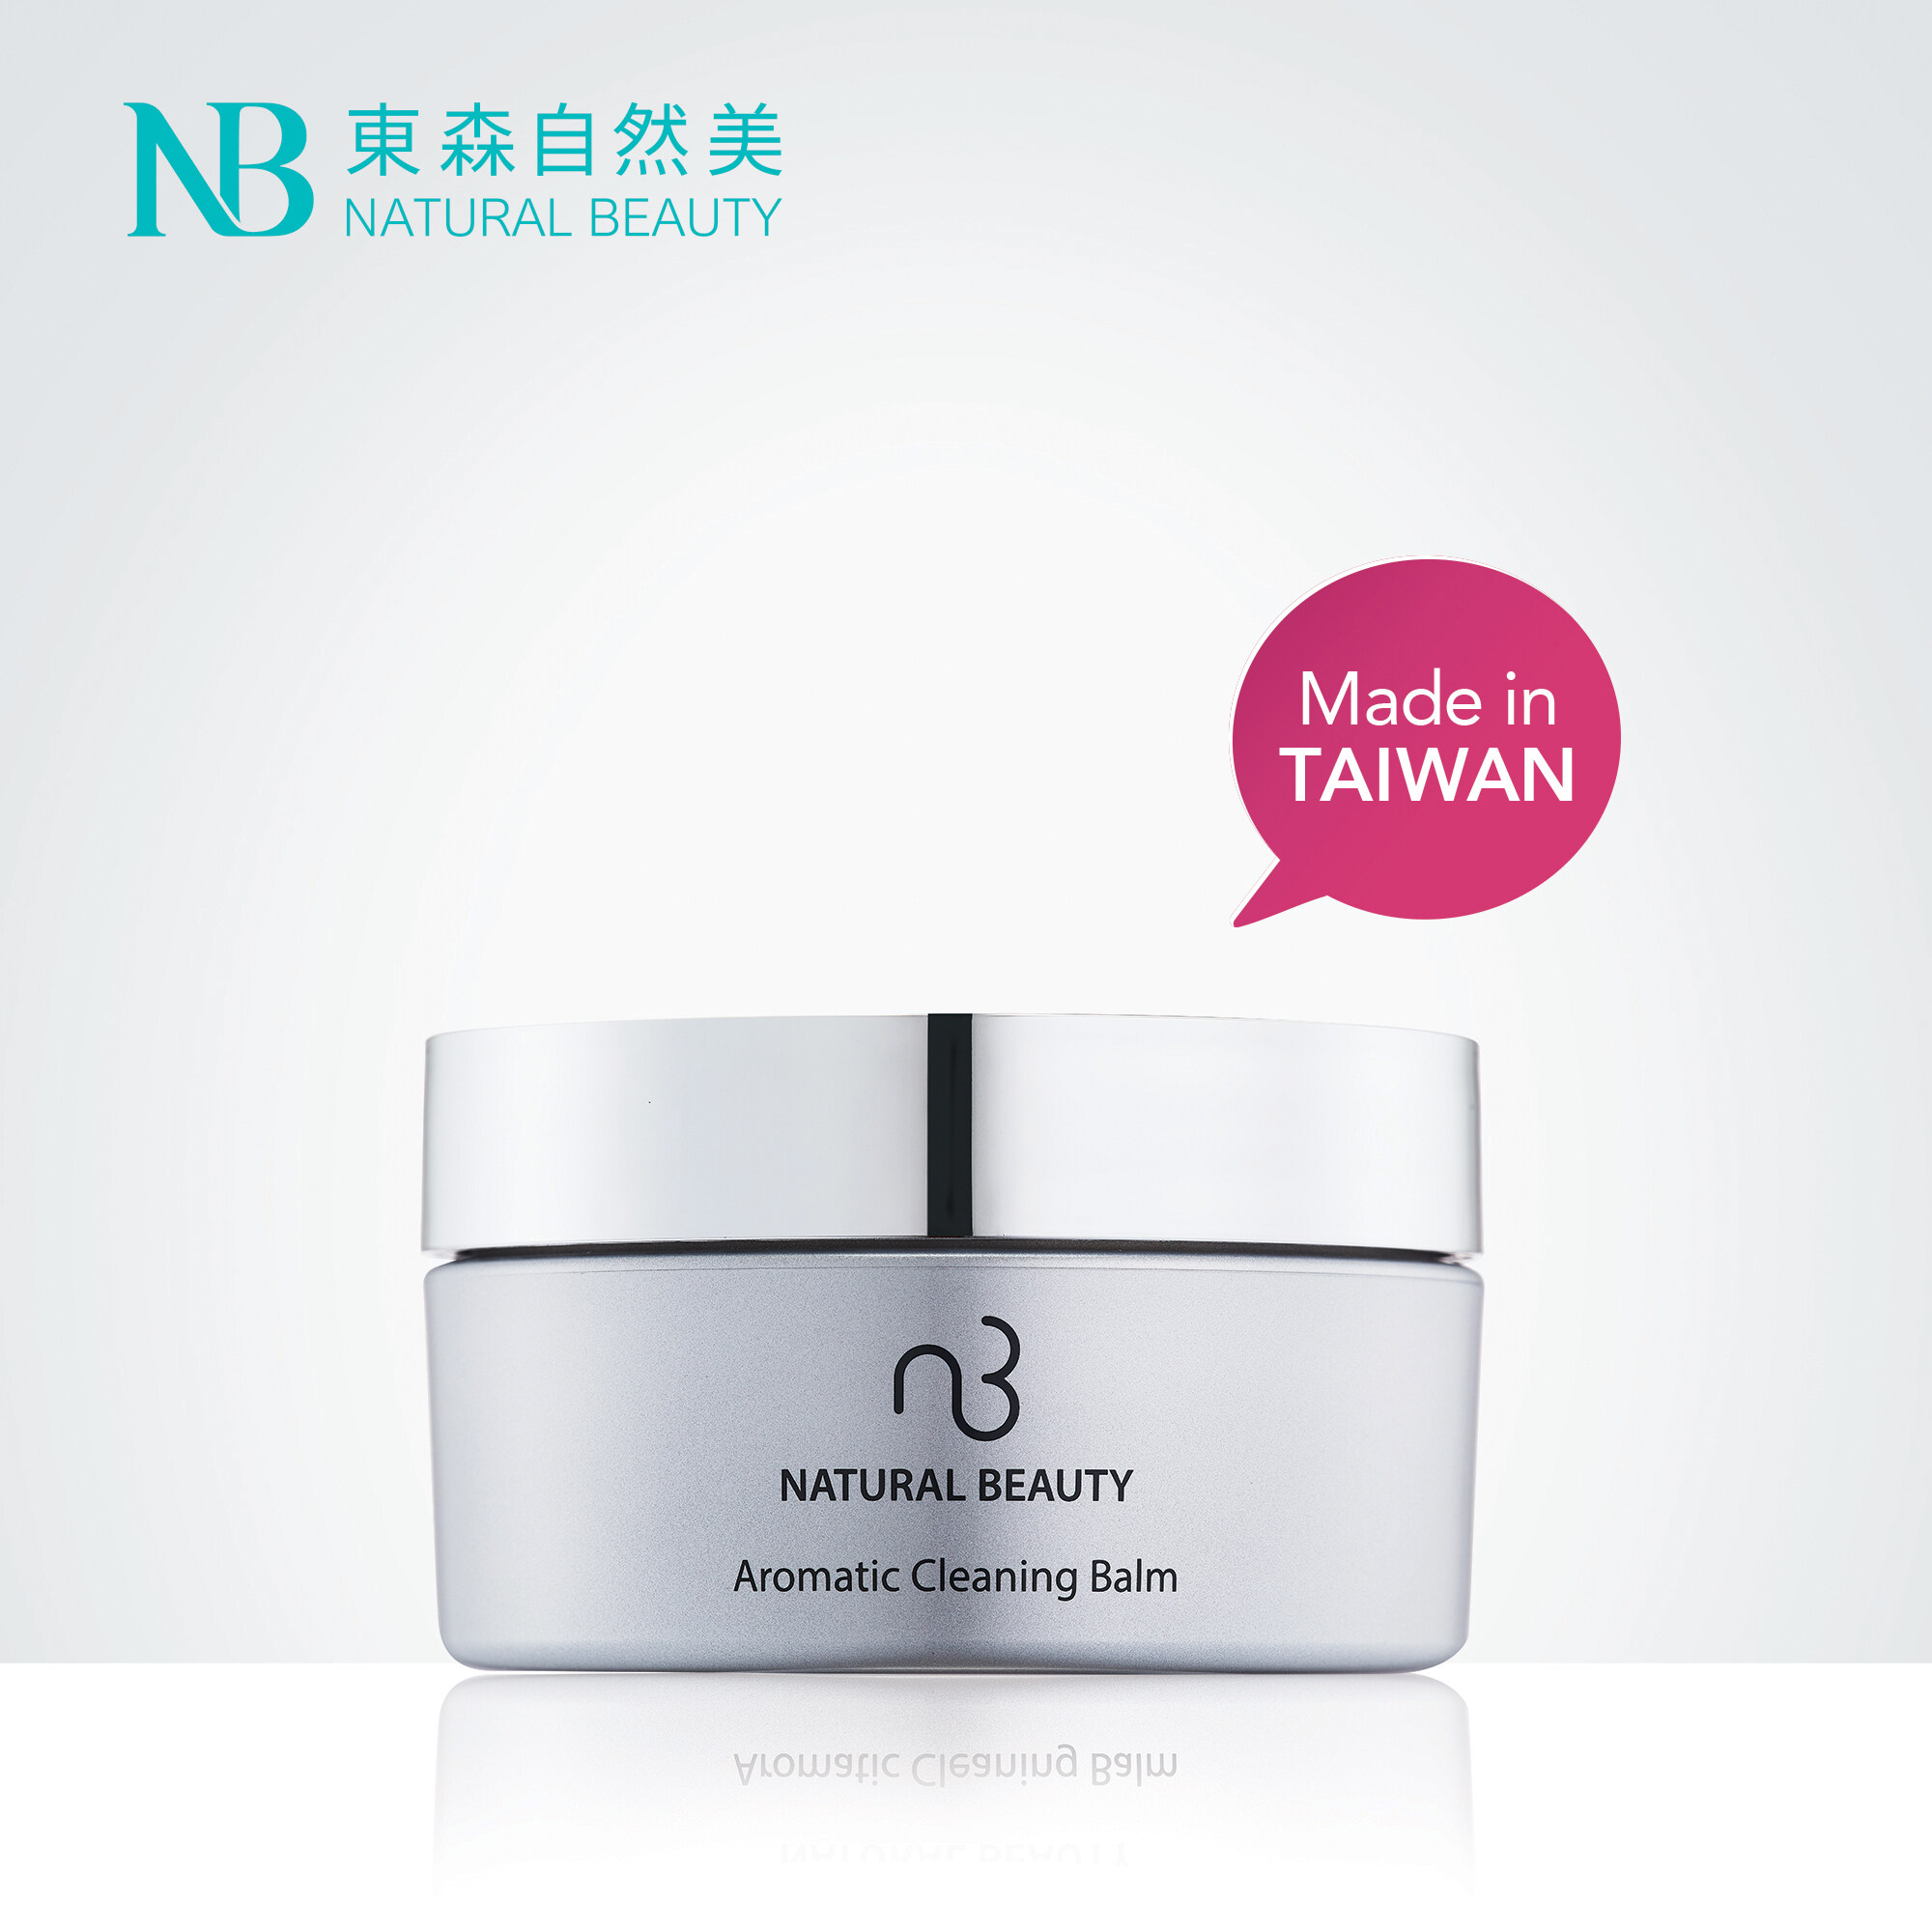 HYDRATING Aromatic Cleaning Balm 125g (Makeup Remover) - NATURAL BEAUTY 东森自然美